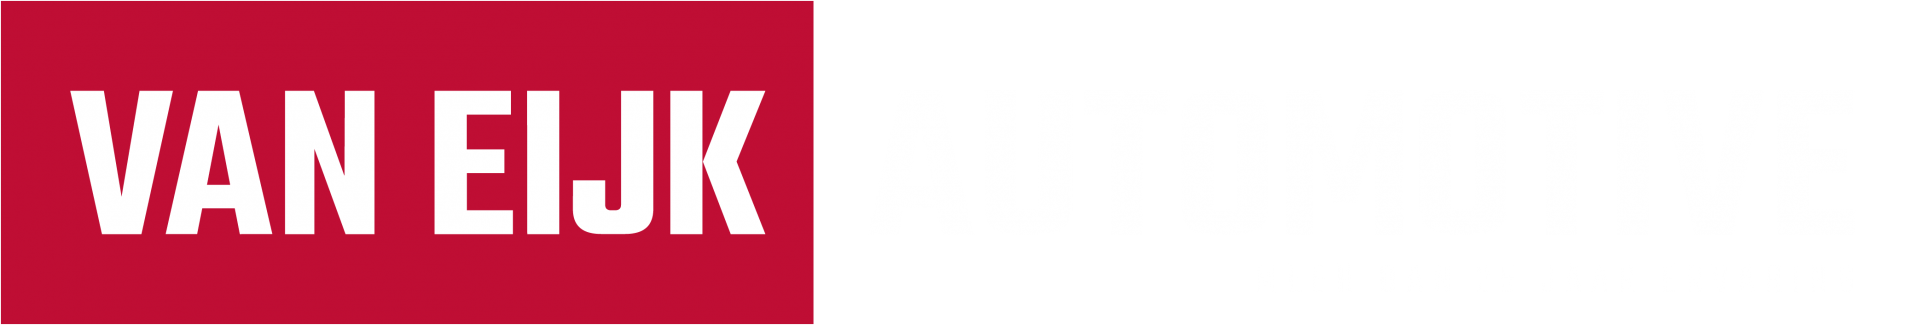 VAN EIJK AUTOMOTIVE